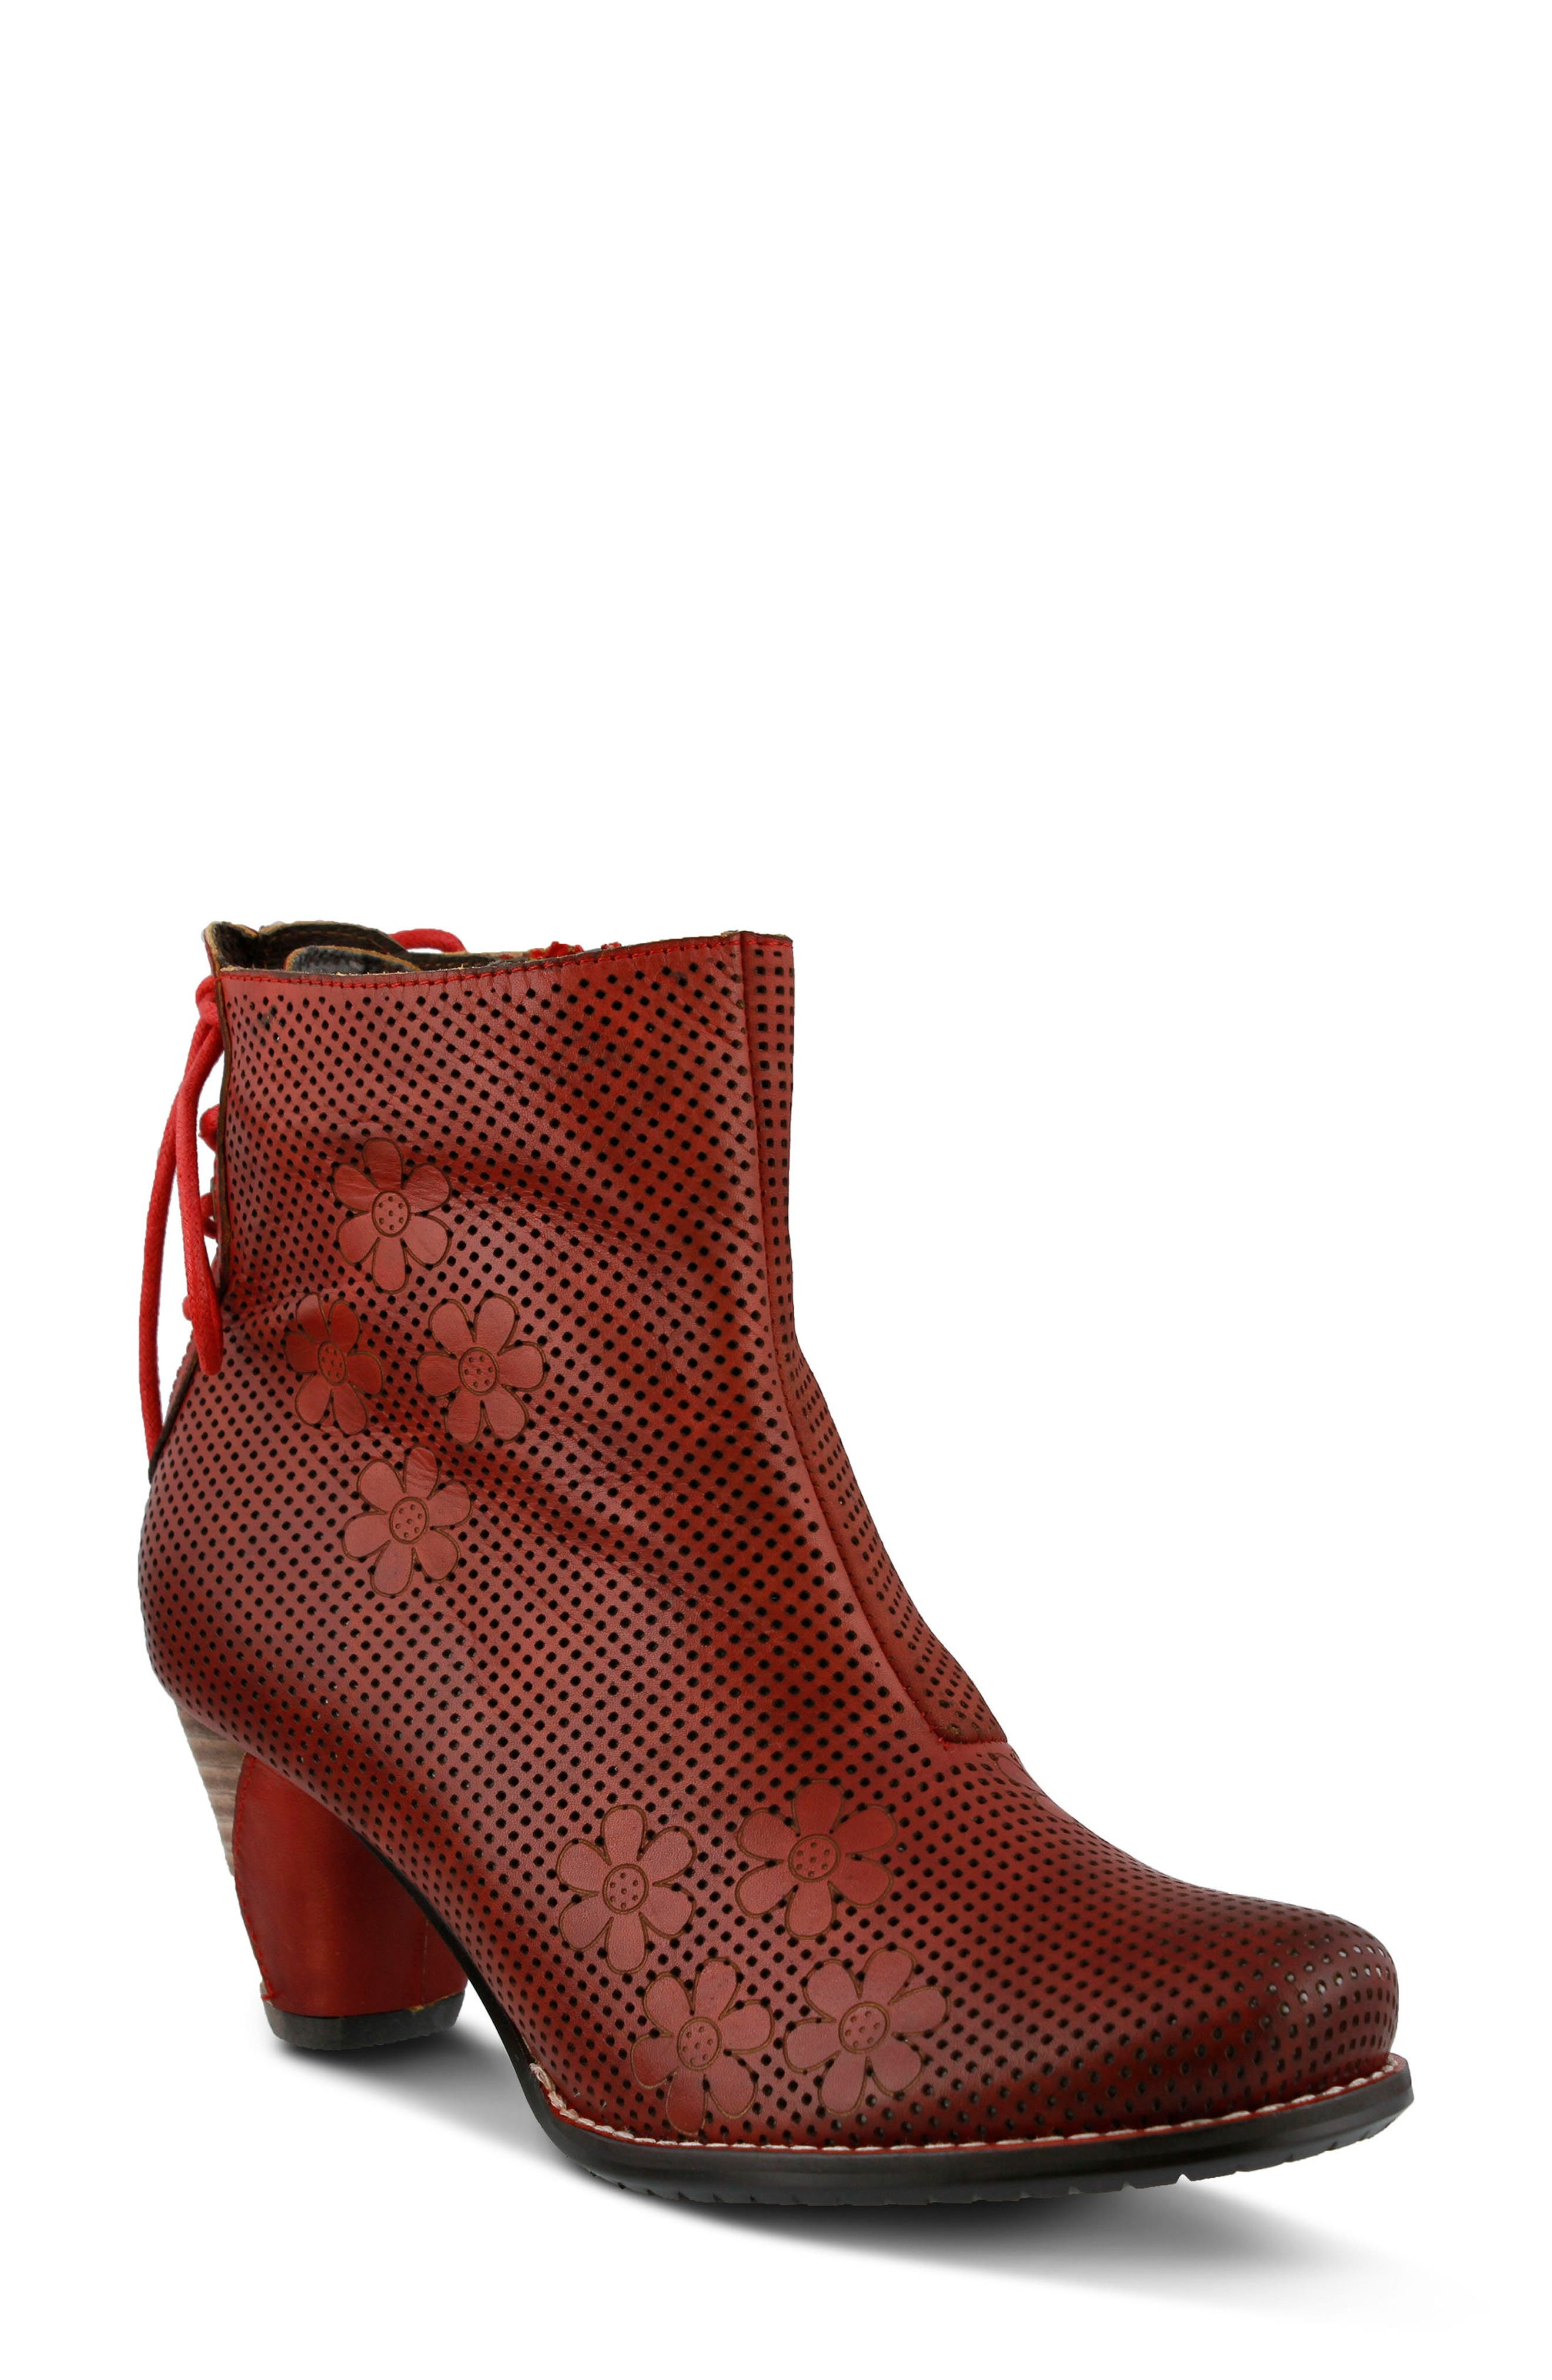 L'Artiste Teca Bootie,                         Main,                         color, Red Leather